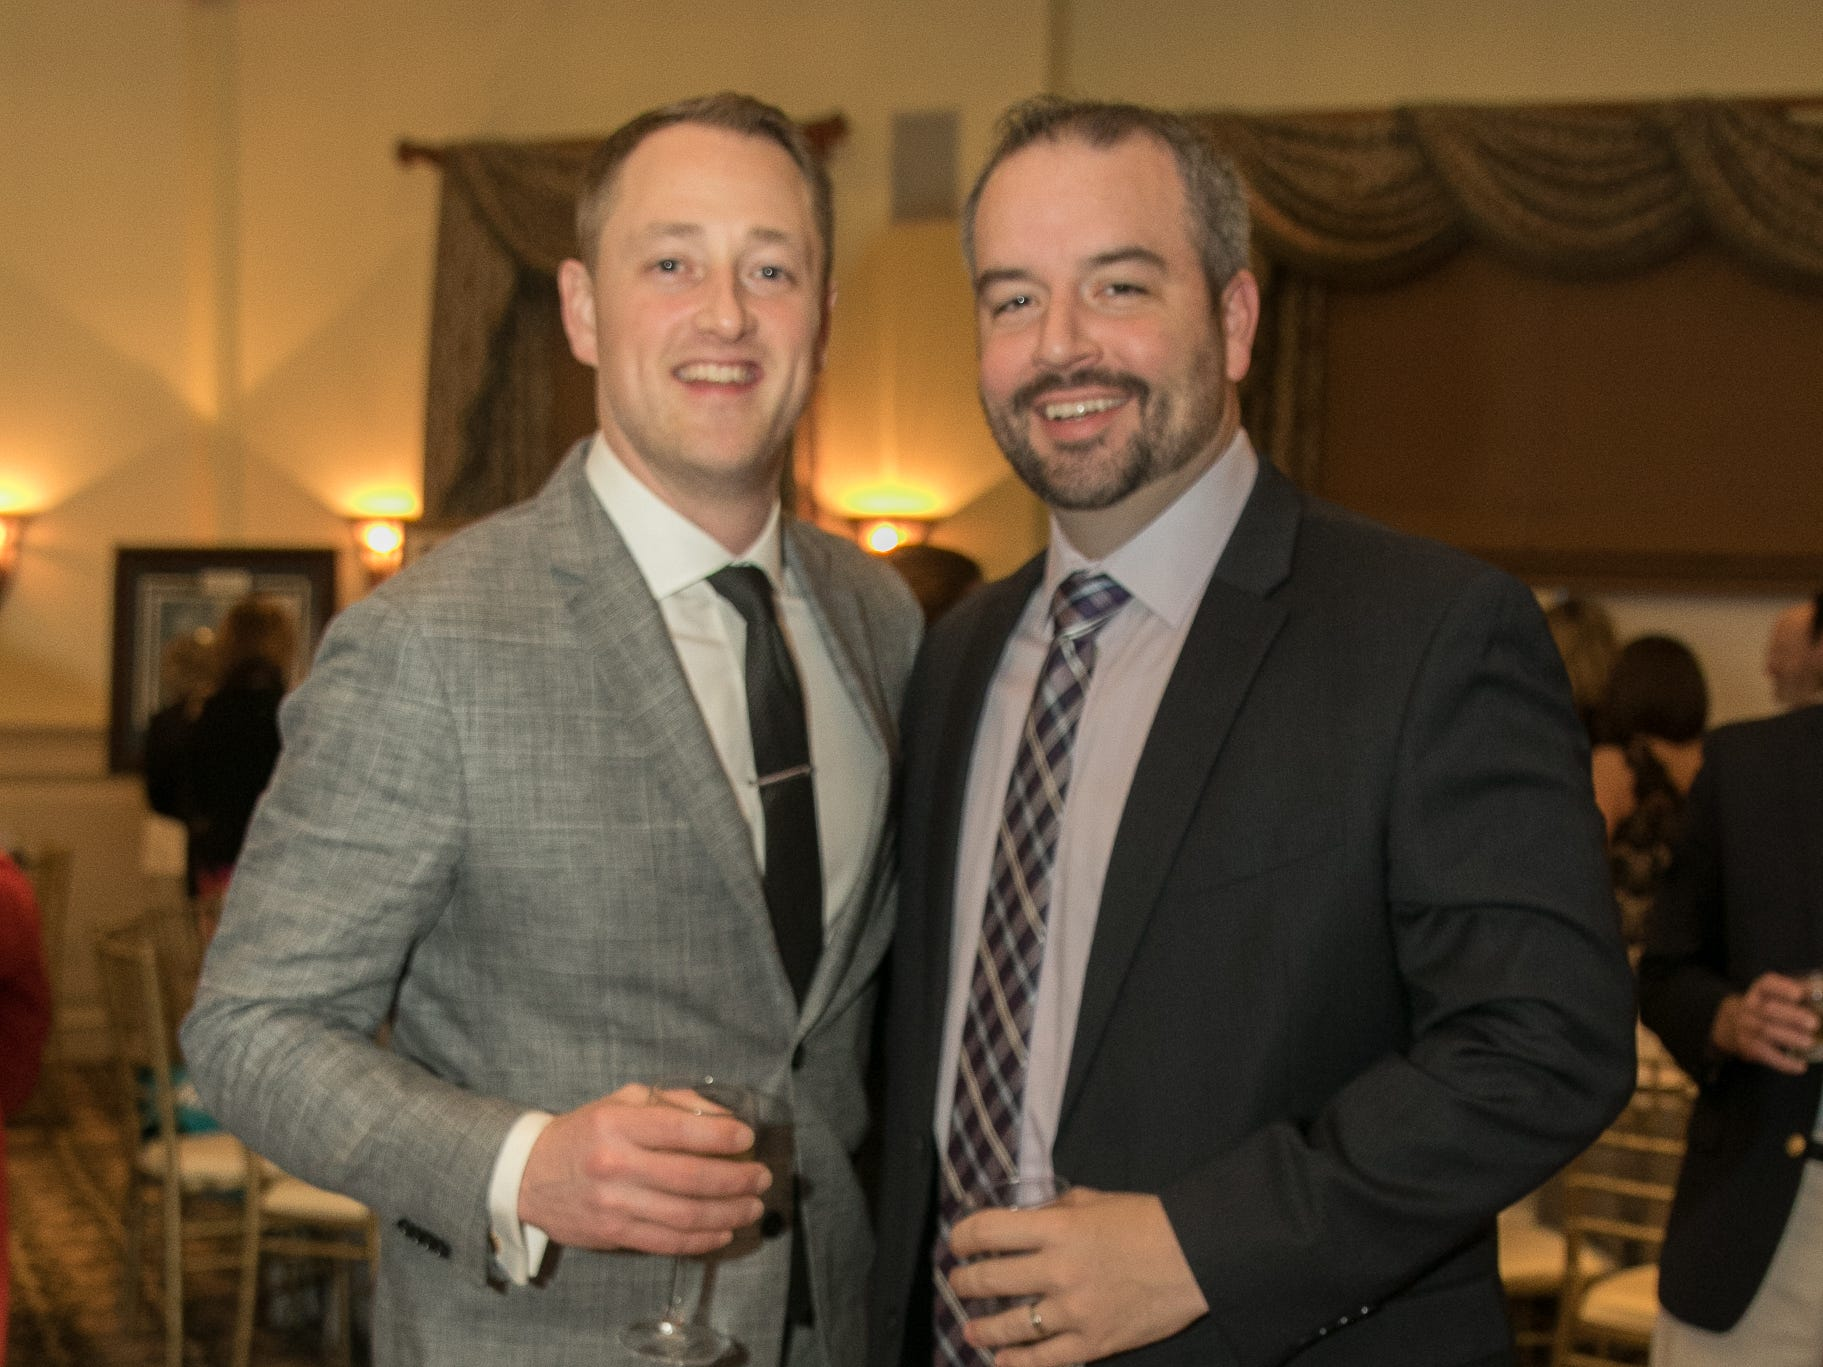 Adam Laub, Brian Cullinane. The Emmanuel Cancer Foundation 9th Annual Bash at The Brick House. 03/15/2019